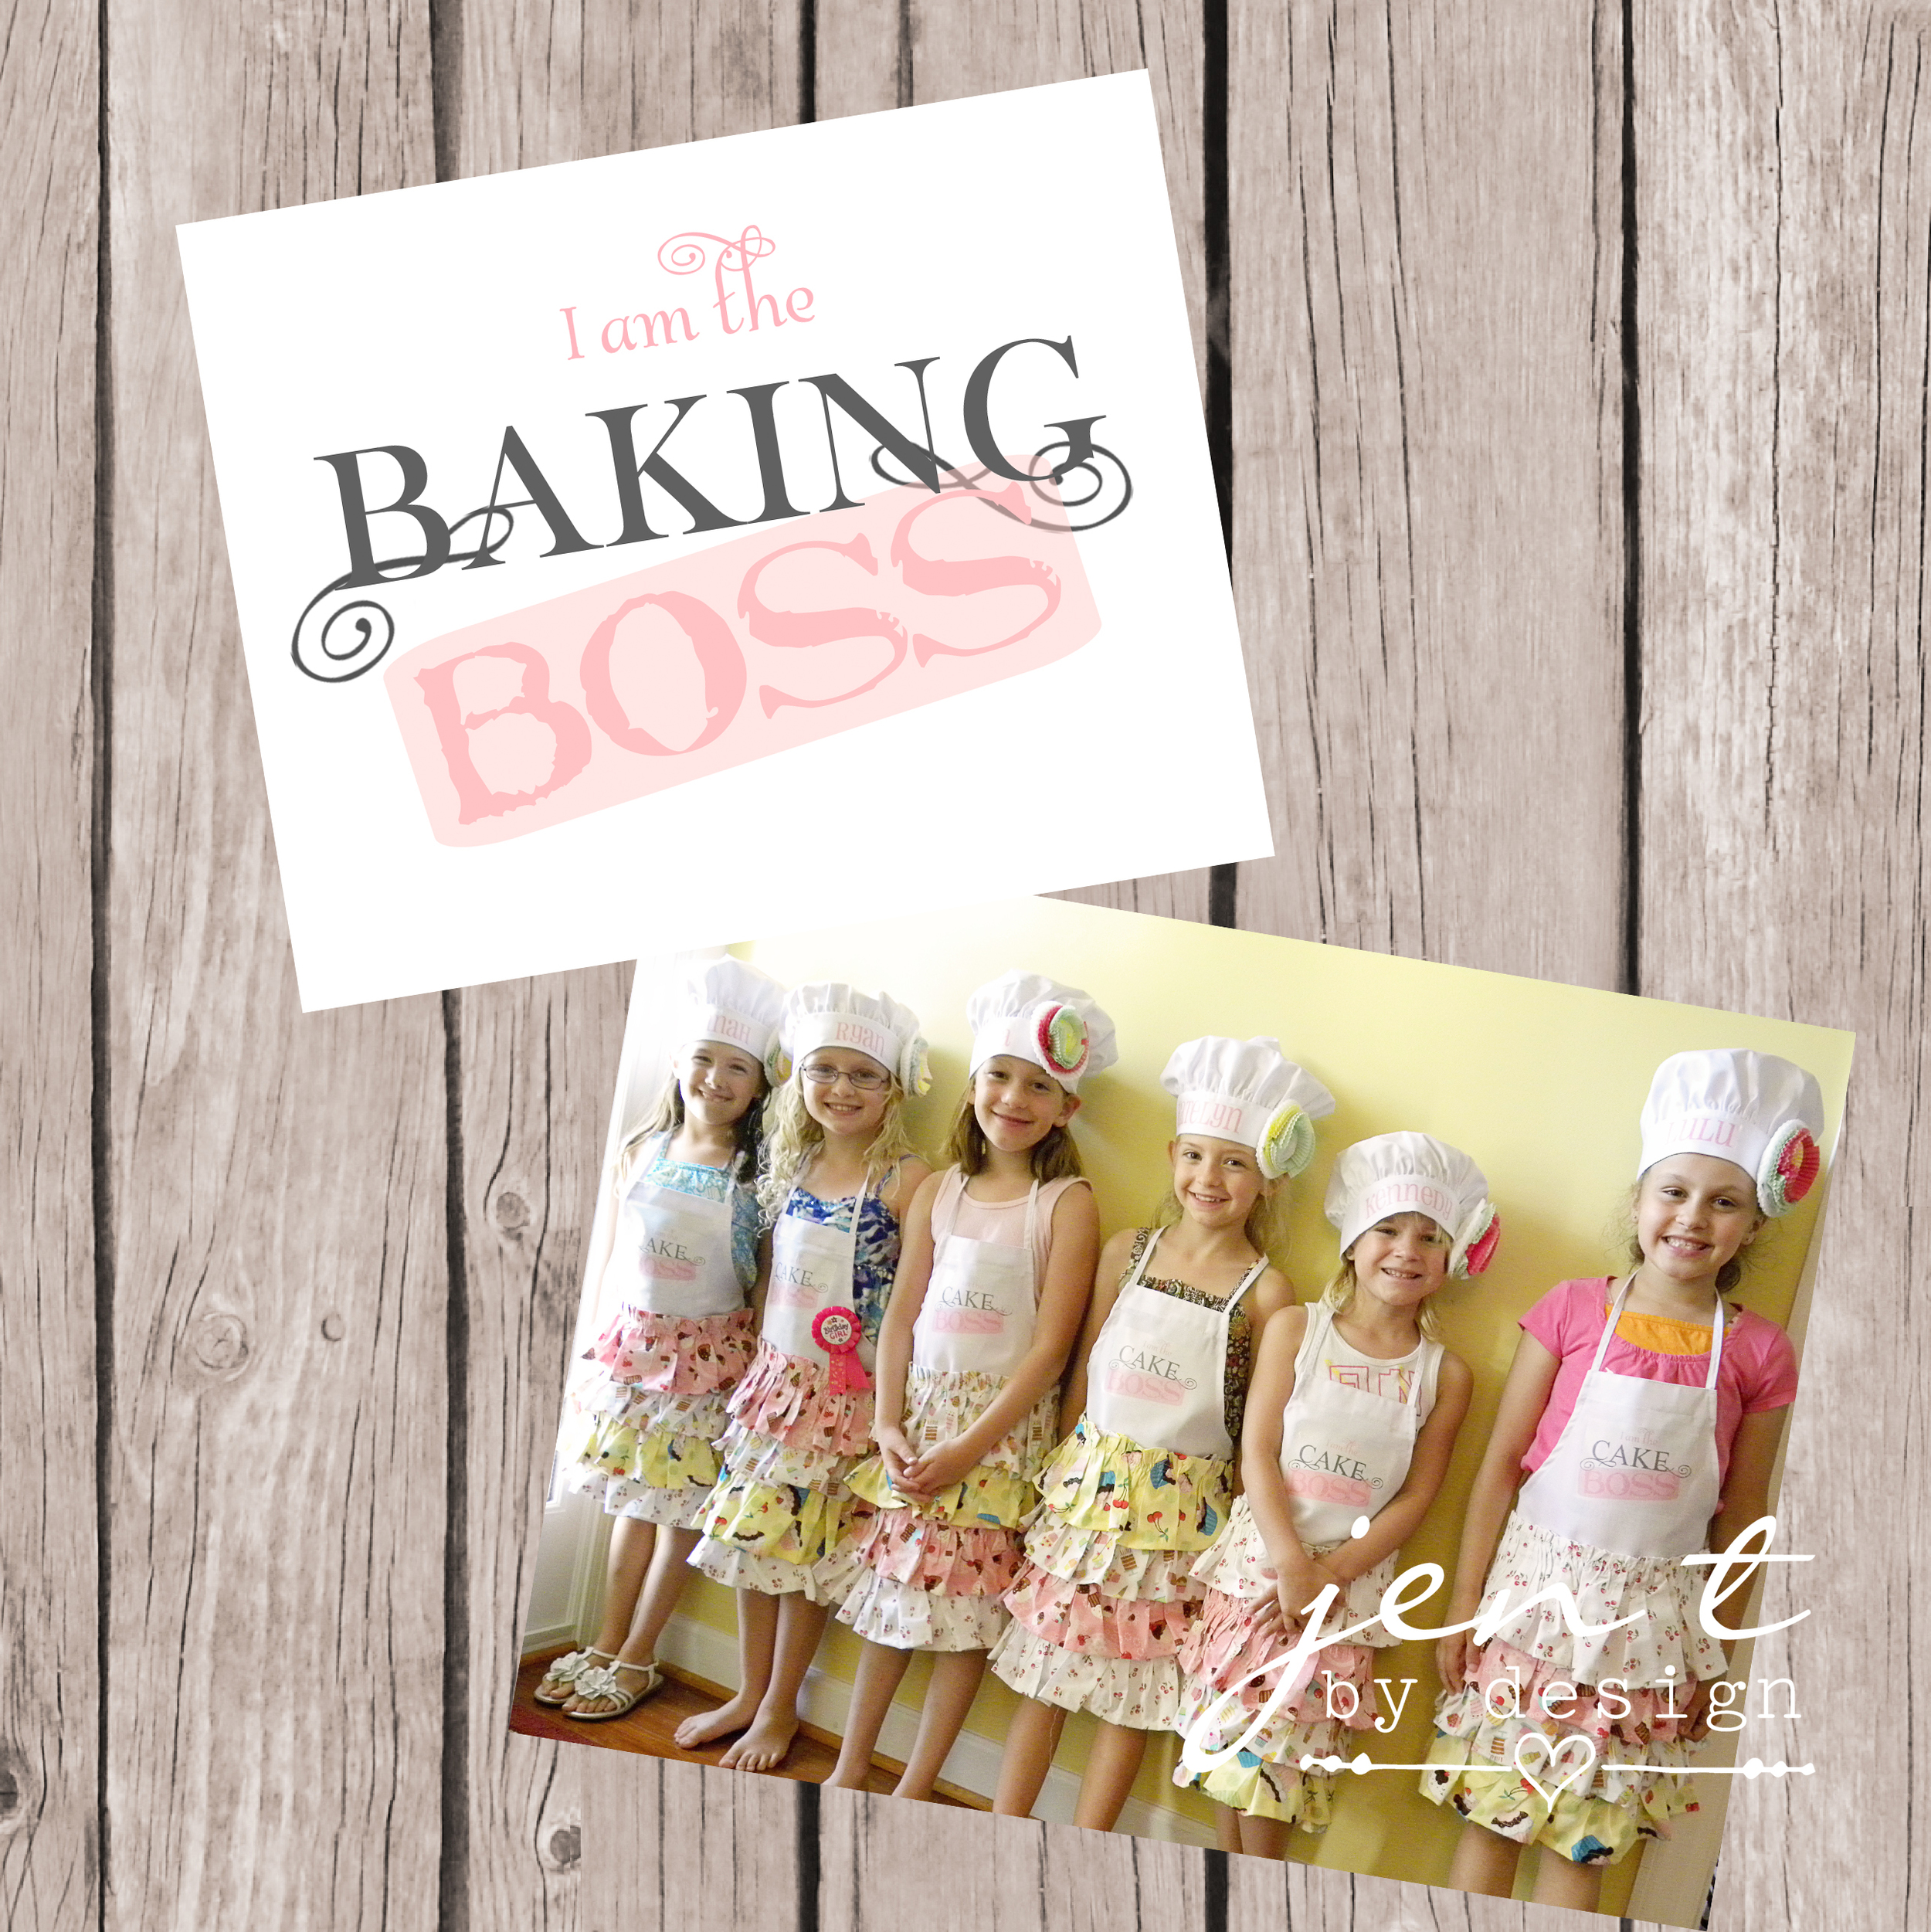 Baking Boss Apron Graphic - mounted and watermarked copy.jpg